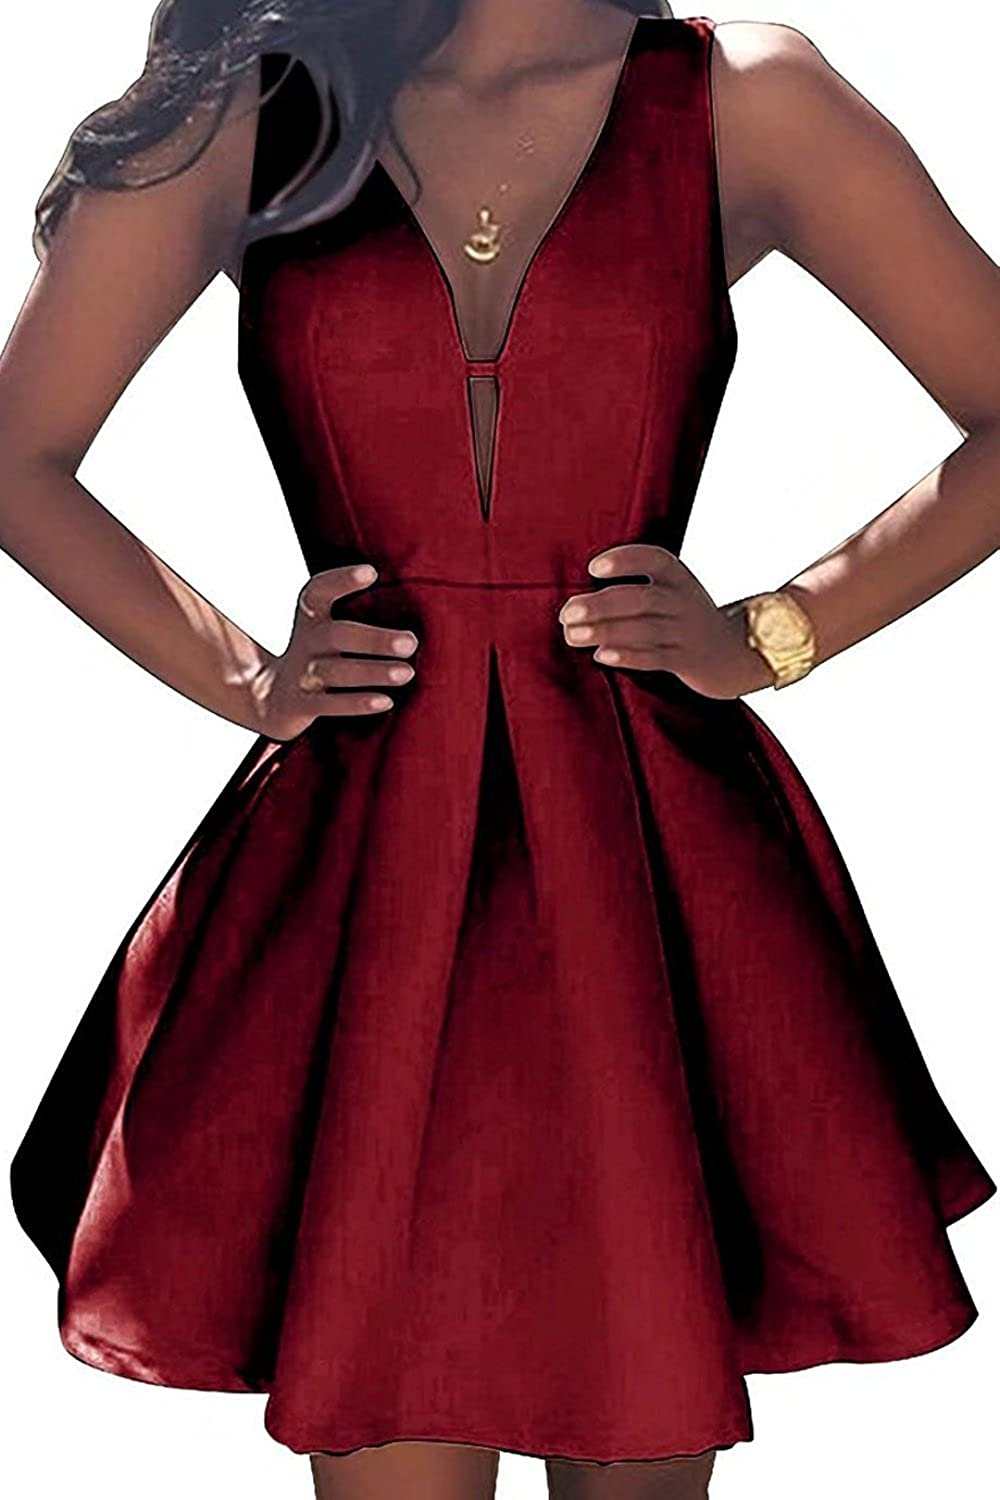 Burgundy JQLD Women's VNeck Aline Satin Homecoming Dress Short Evening Party Gown Ruched Skirt